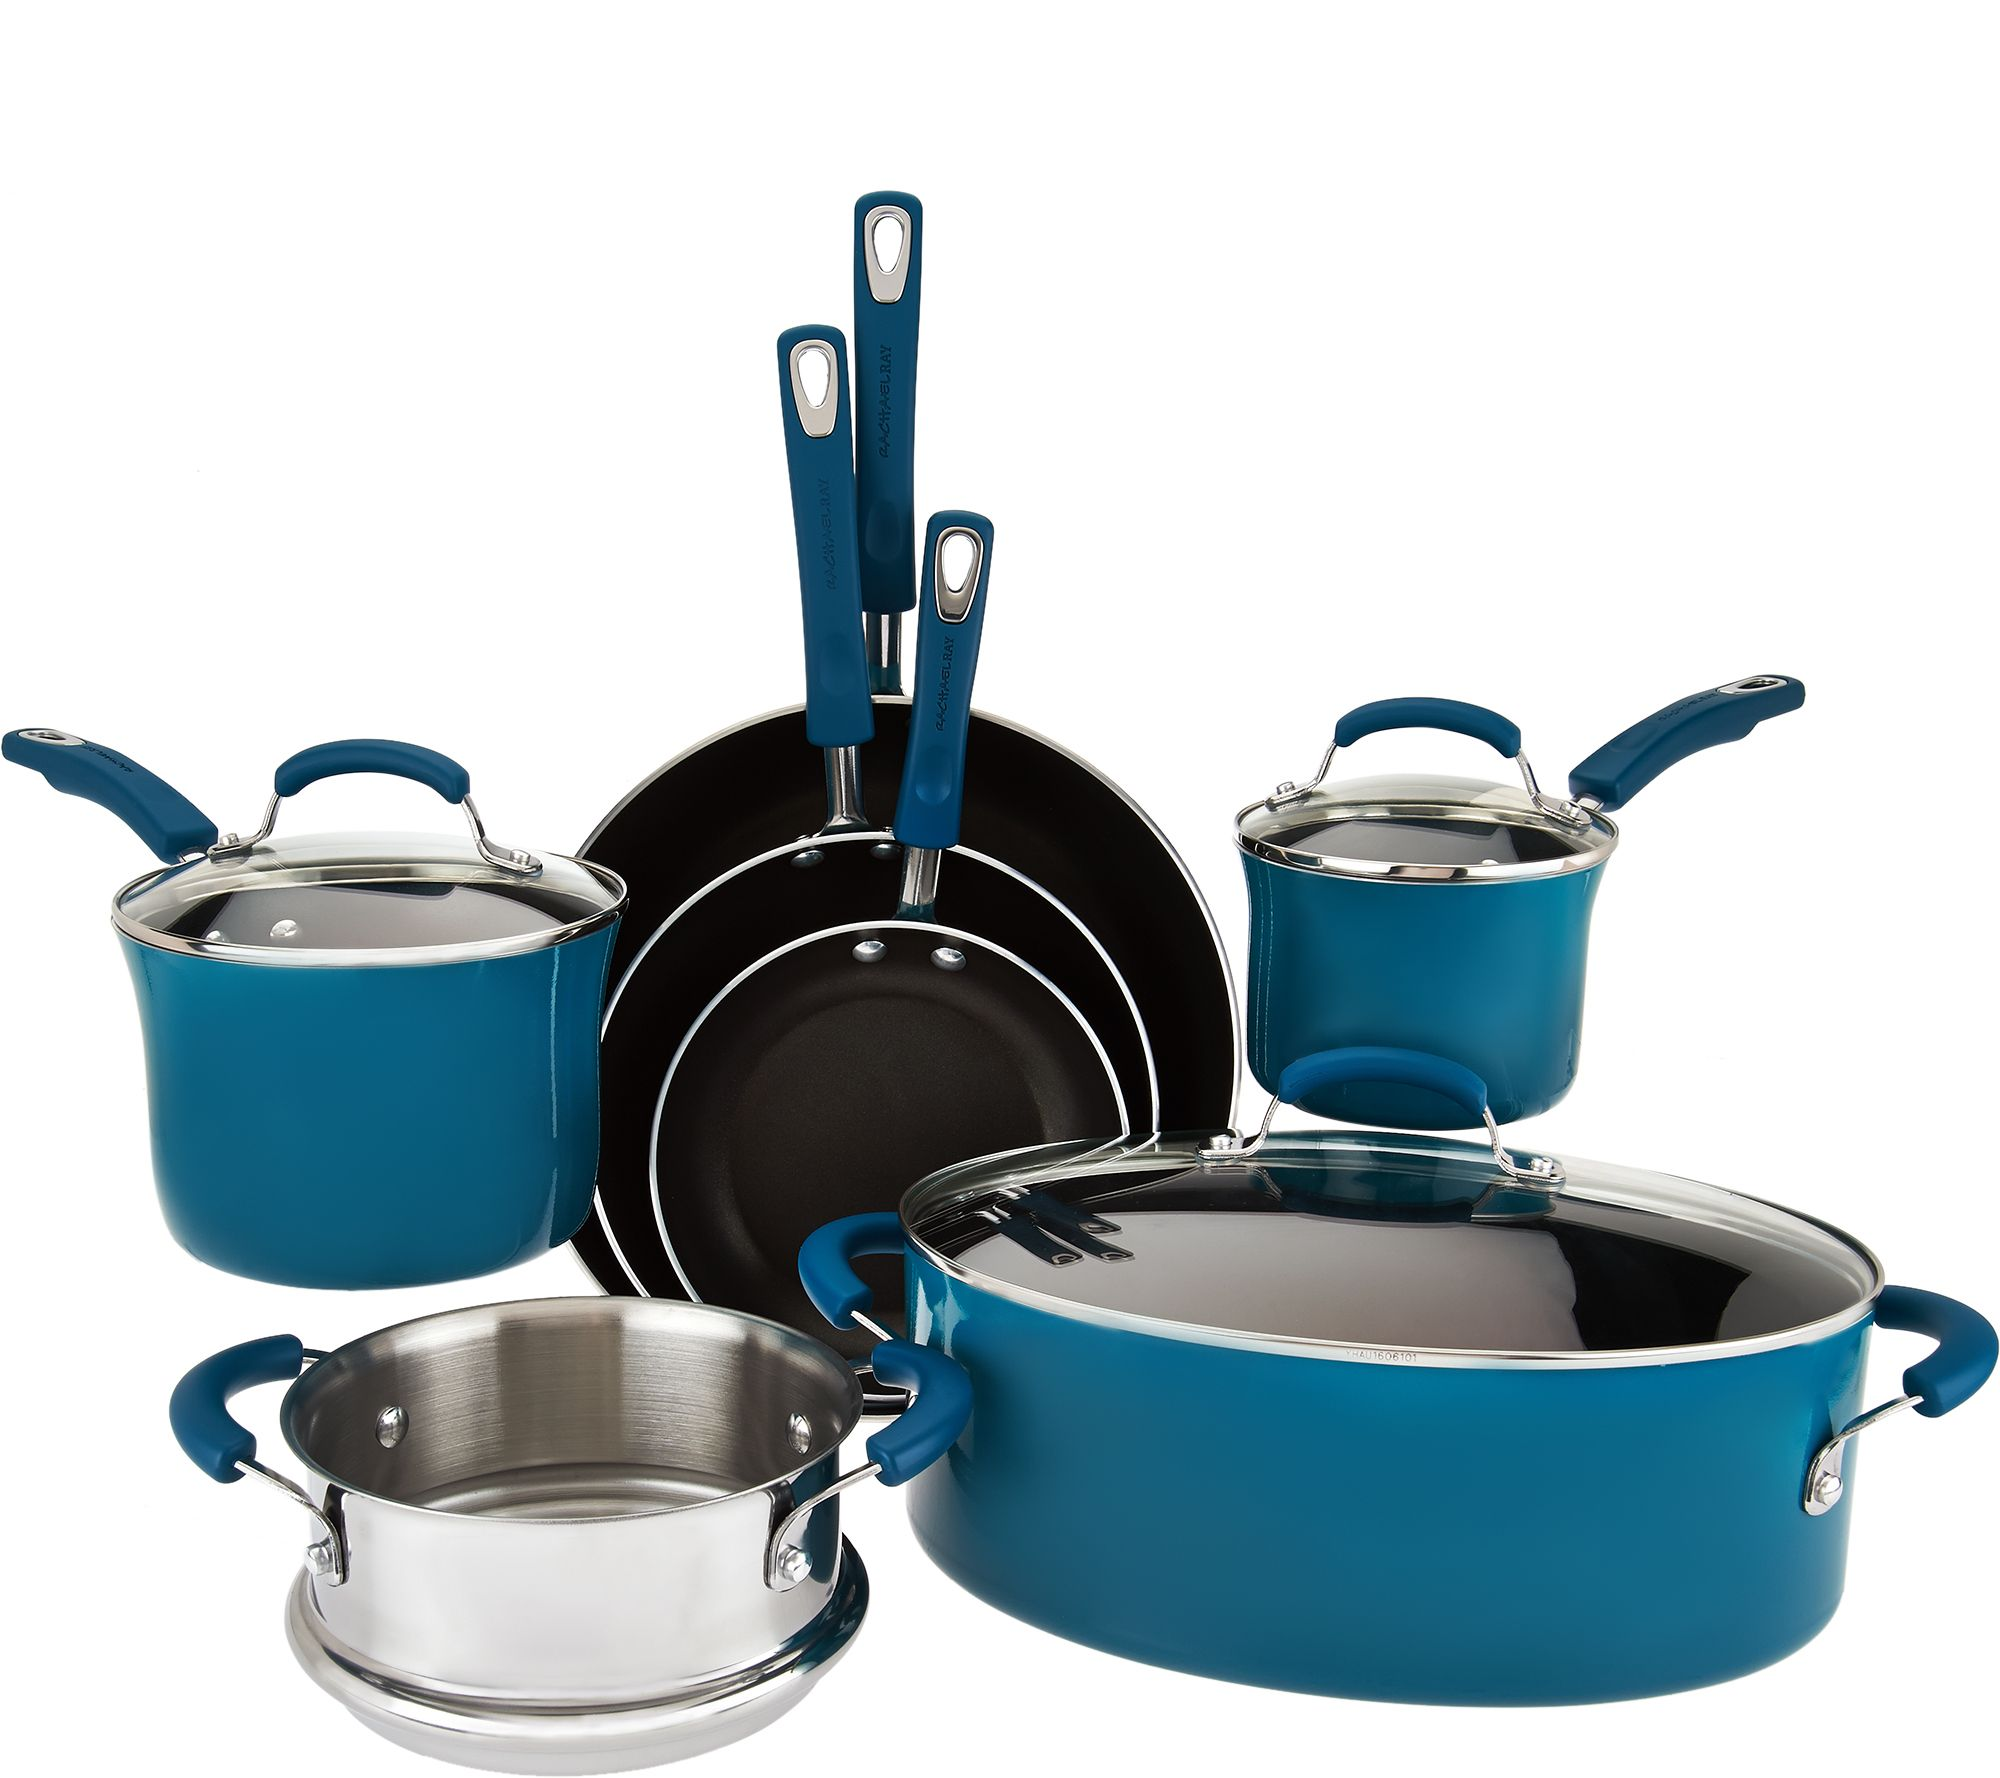 Kick off your cooking in style with the help of this vibrant Rachael Ray cookware set. Gift Givers: This item ships in its original packaging. If intended as a gift, the packaging may reveal the contents.